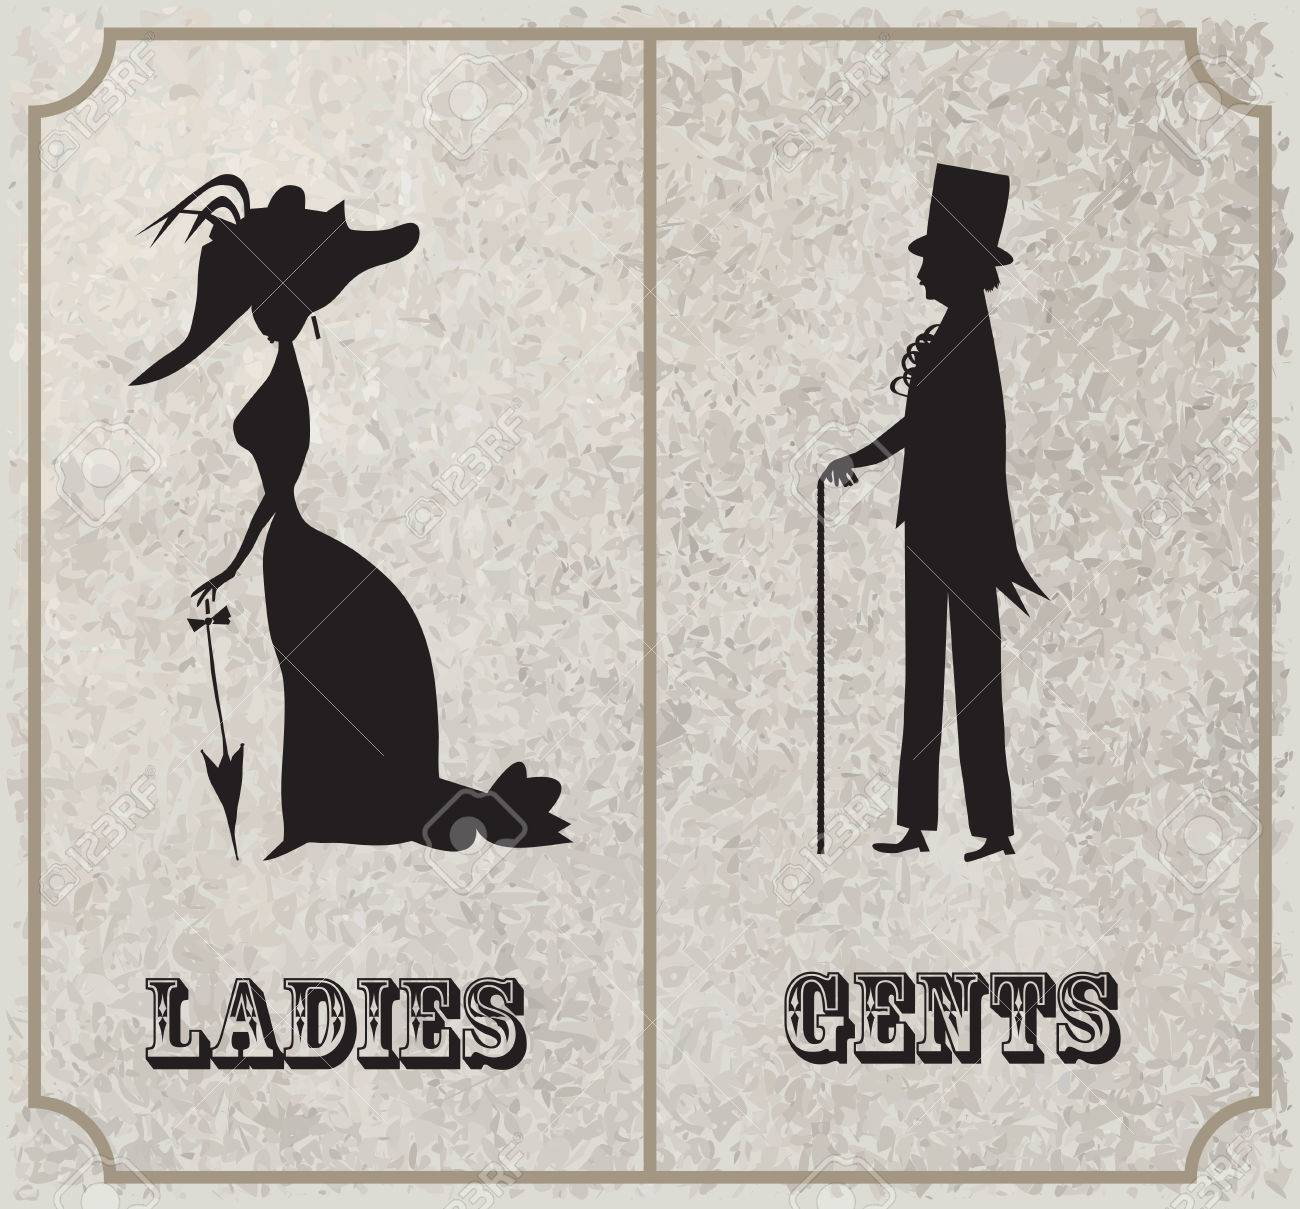 Lady And Gentleman Symbol Toilet Sign In Vintage Style Royalty Free Cliparts Vectors And Stock Illustration Image 84370799